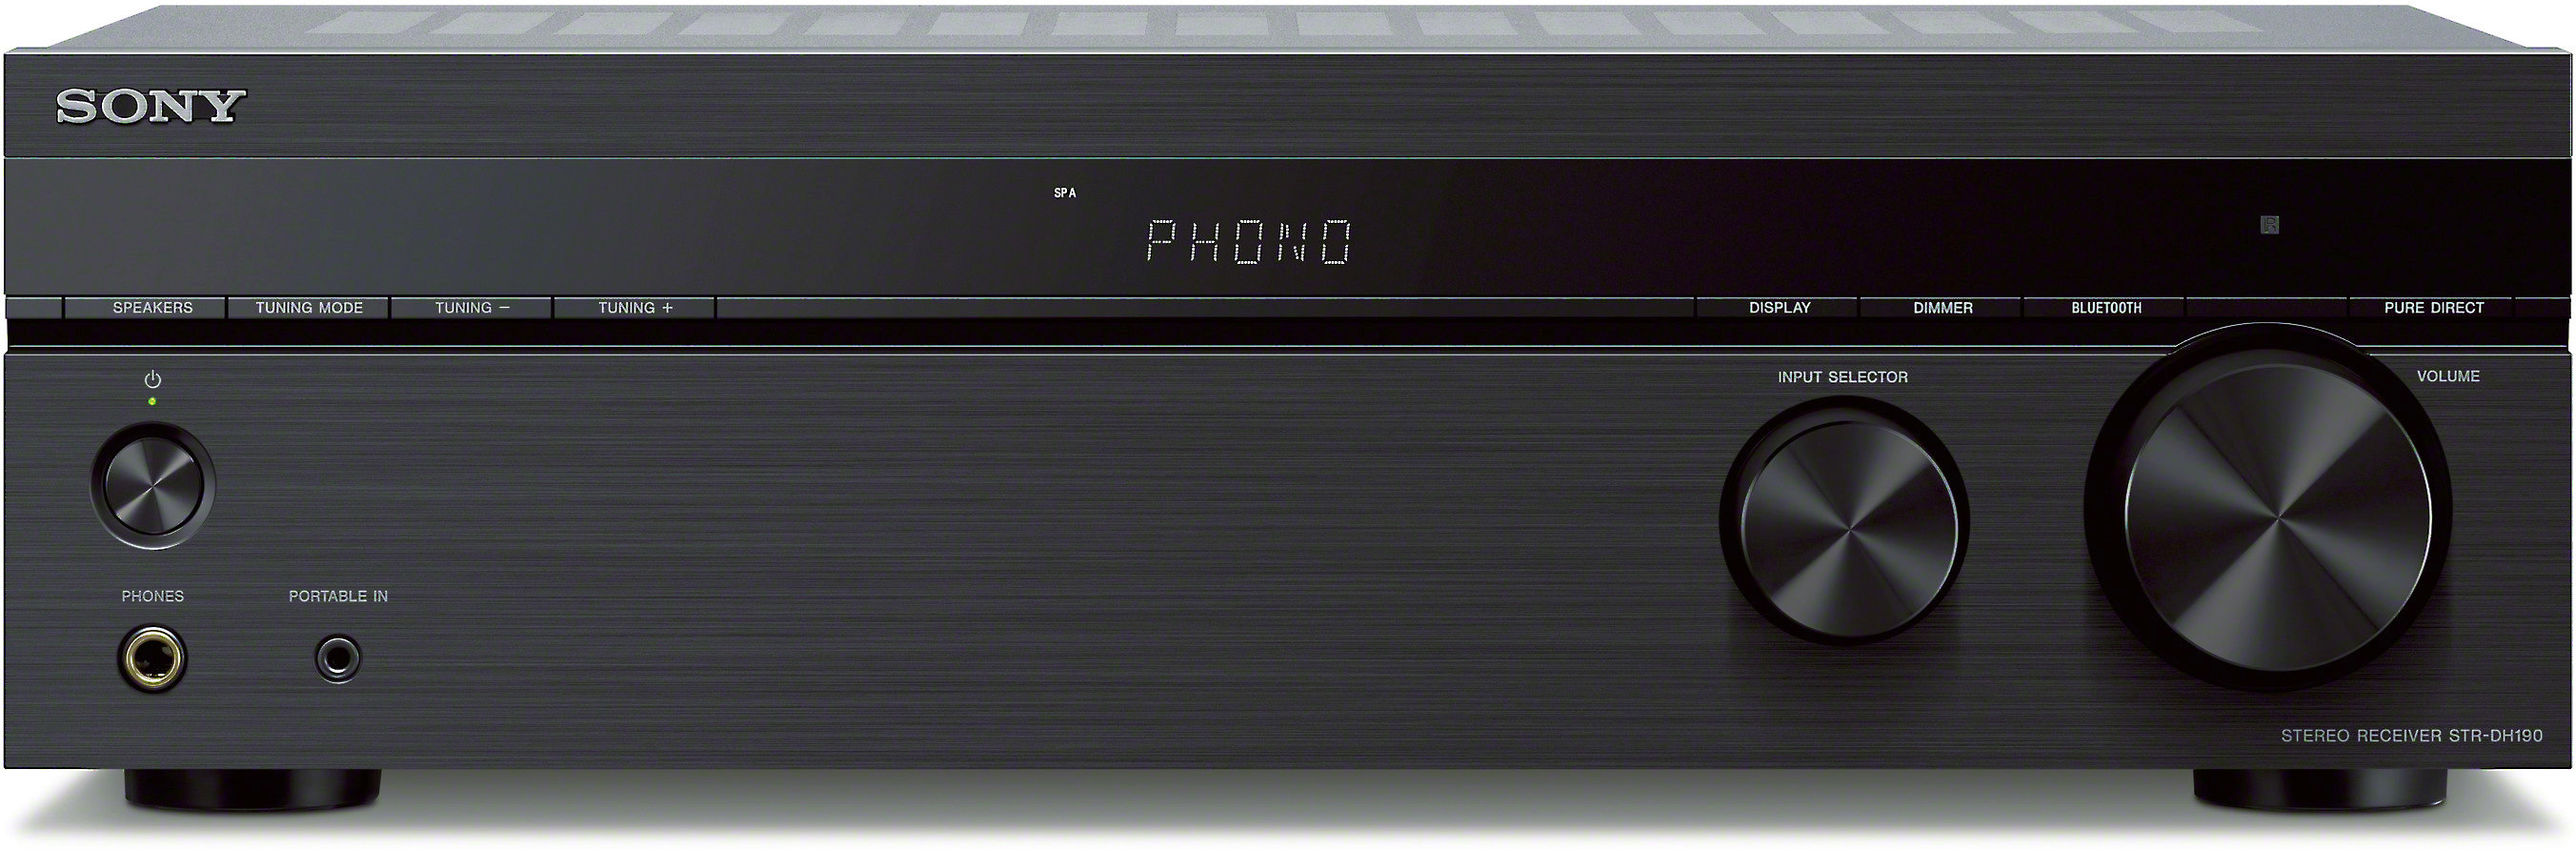 Sony 2-Channel Stereo Receiver with Bluetooth Phono /& Aux Input STR-DH190